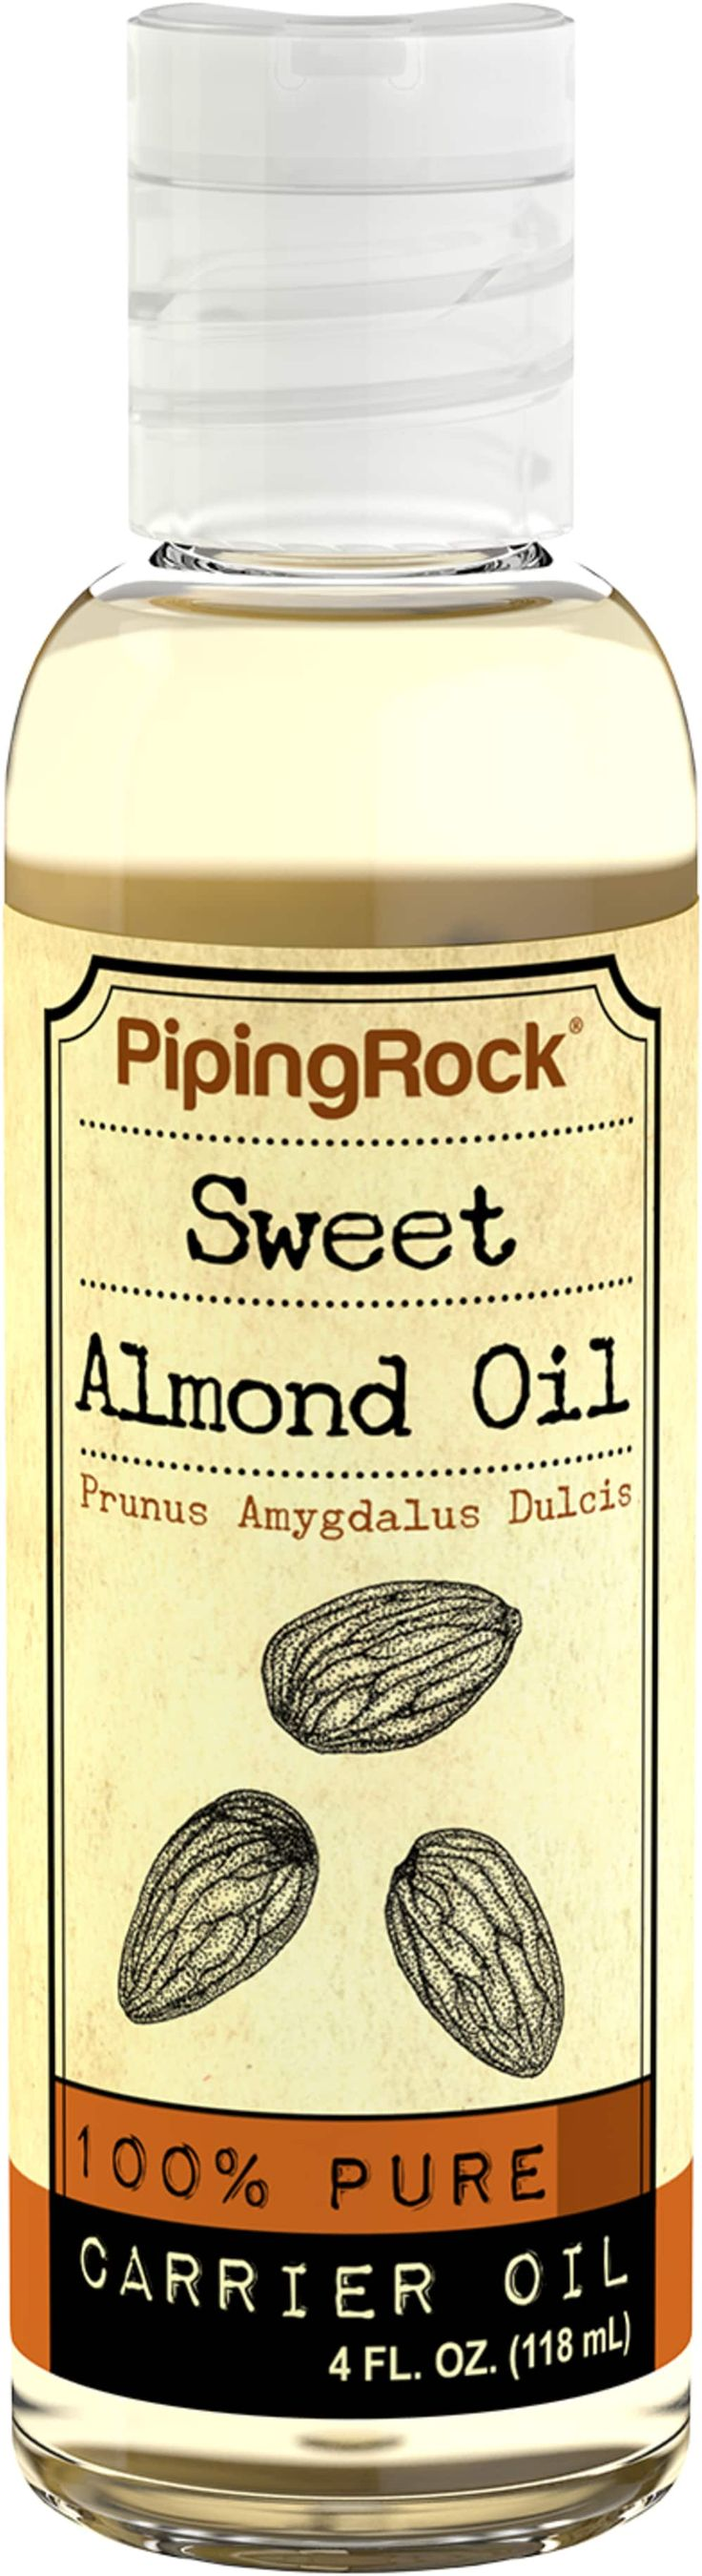 Buy Discounted Sweet Almond Oil 4 Liquid Vitamins & Supplements online at PipingRock.com